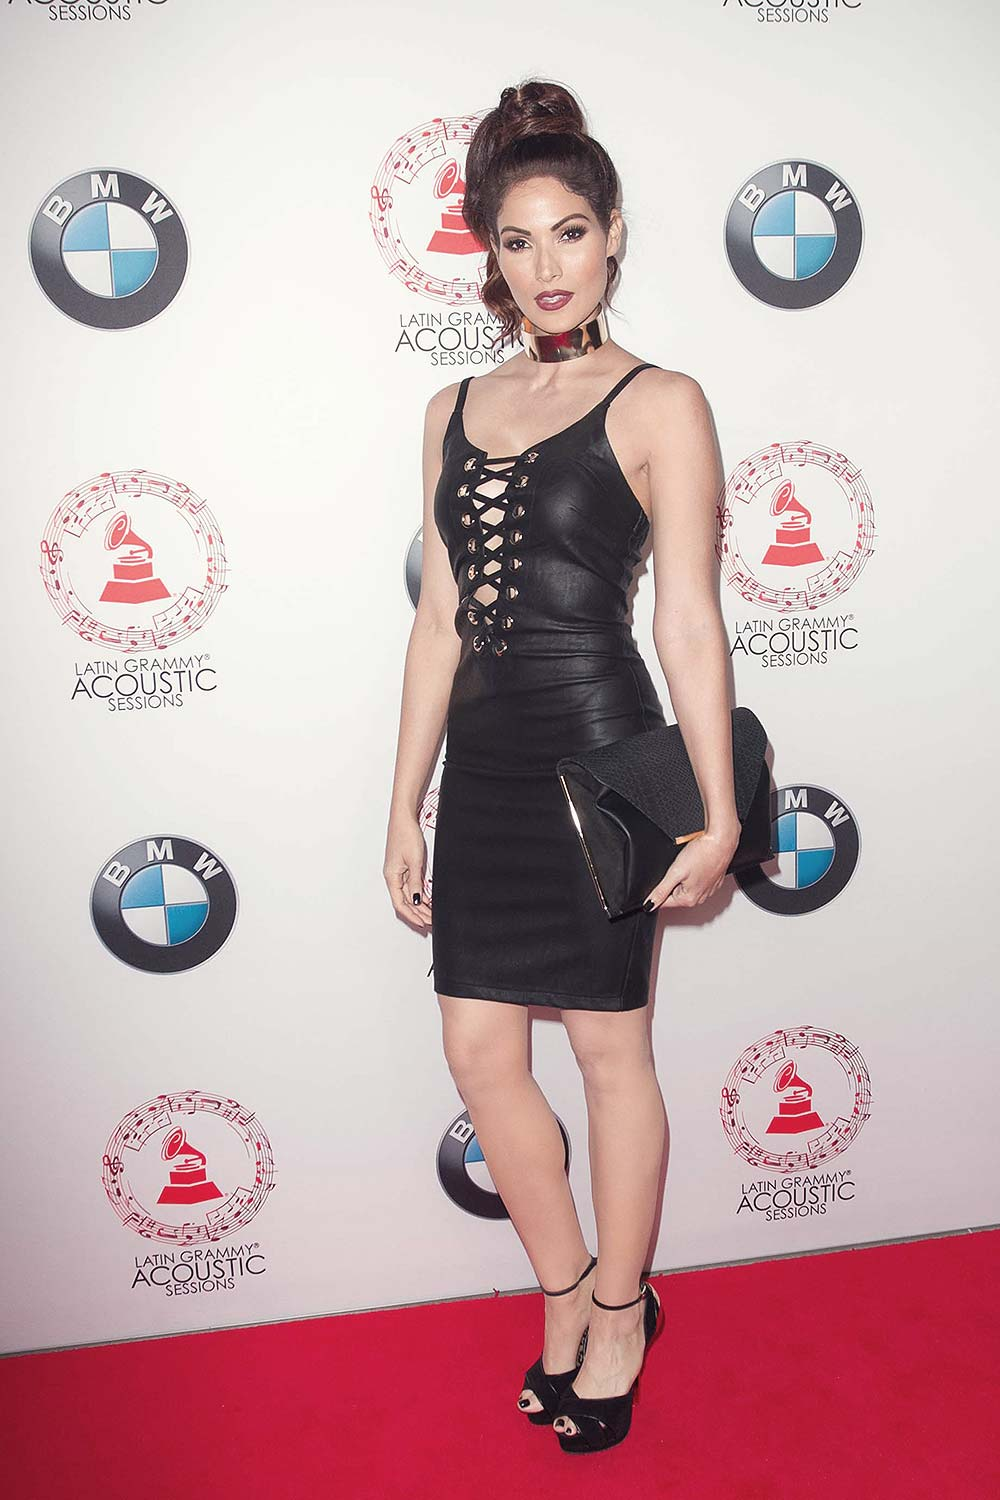 Cynthia Olavarria attends the Latin GRAMMY Acoustic Sessions